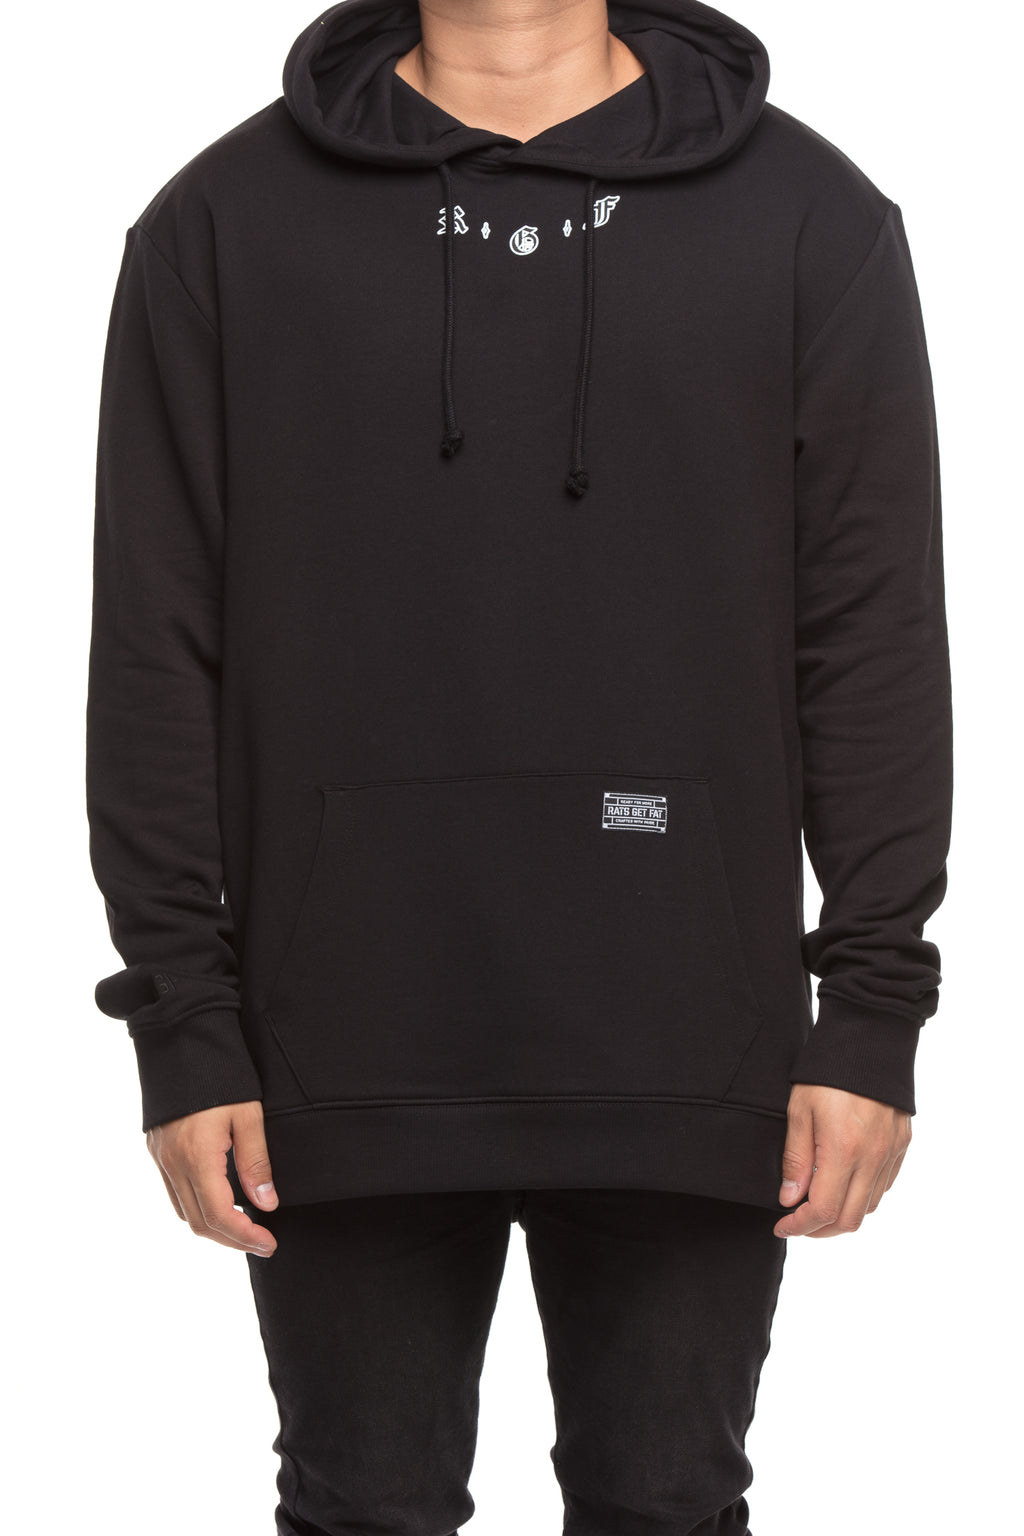 RGF X LY BUTTERFLY HOOD - Black